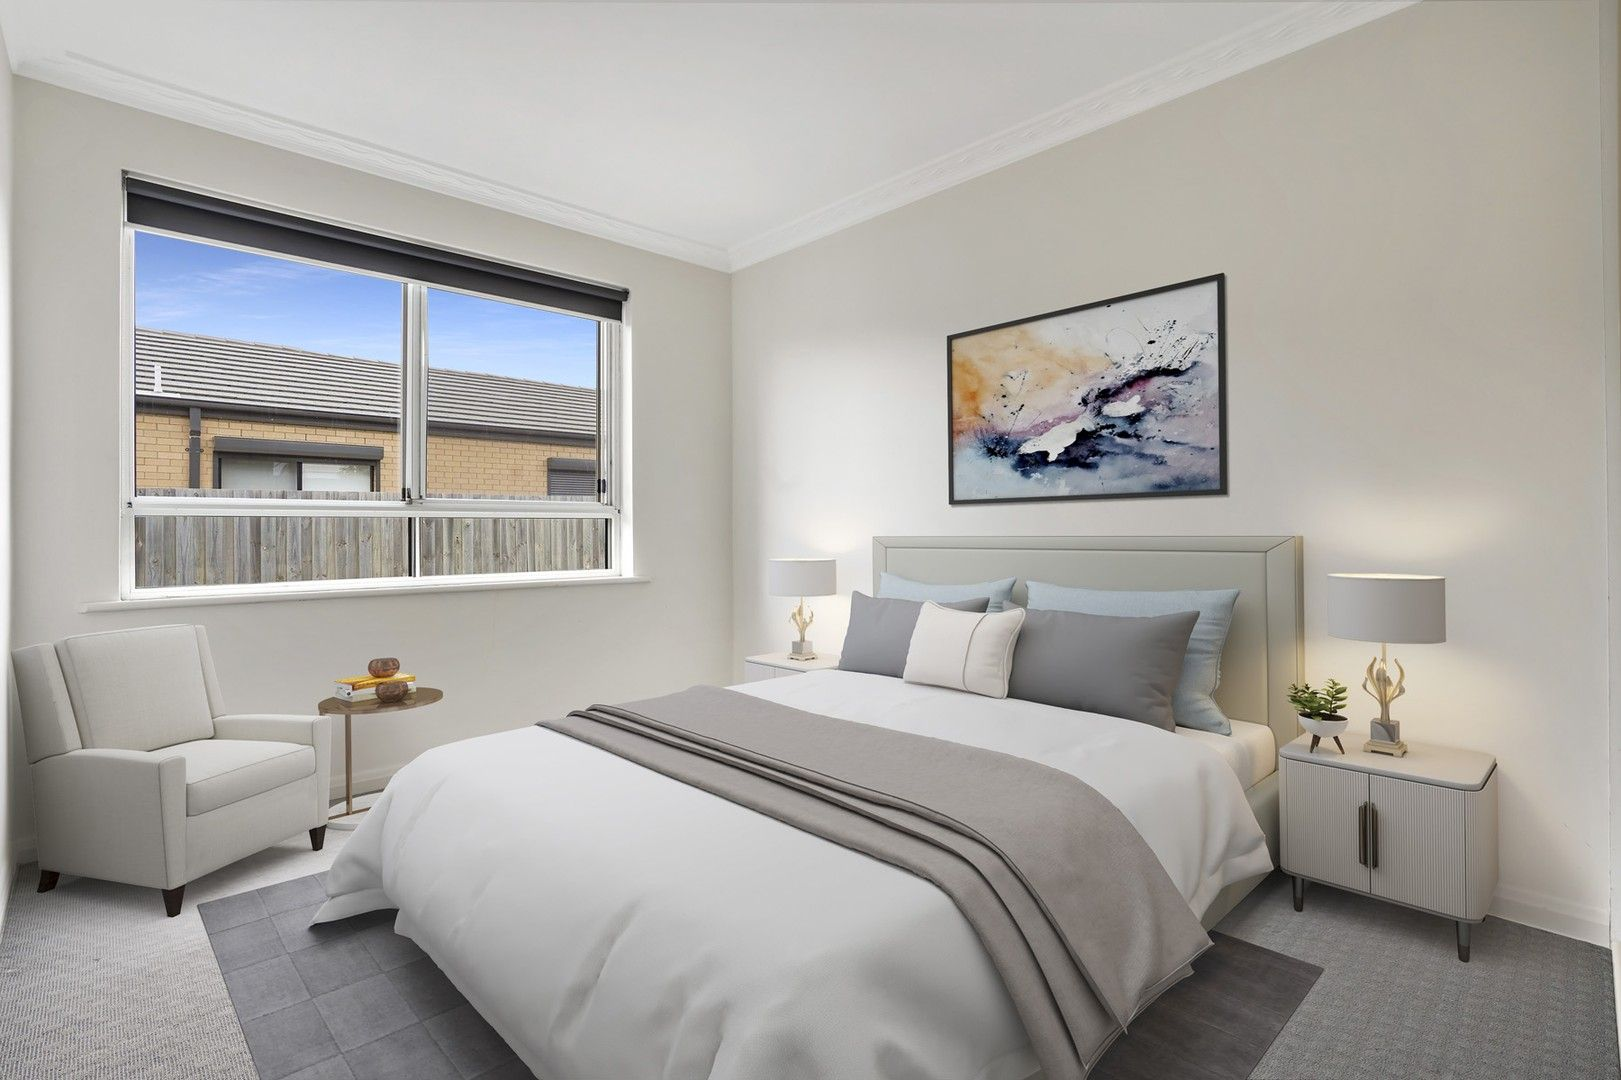 3/151 Thompson Road, Bell Park VIC 3215, Image 0